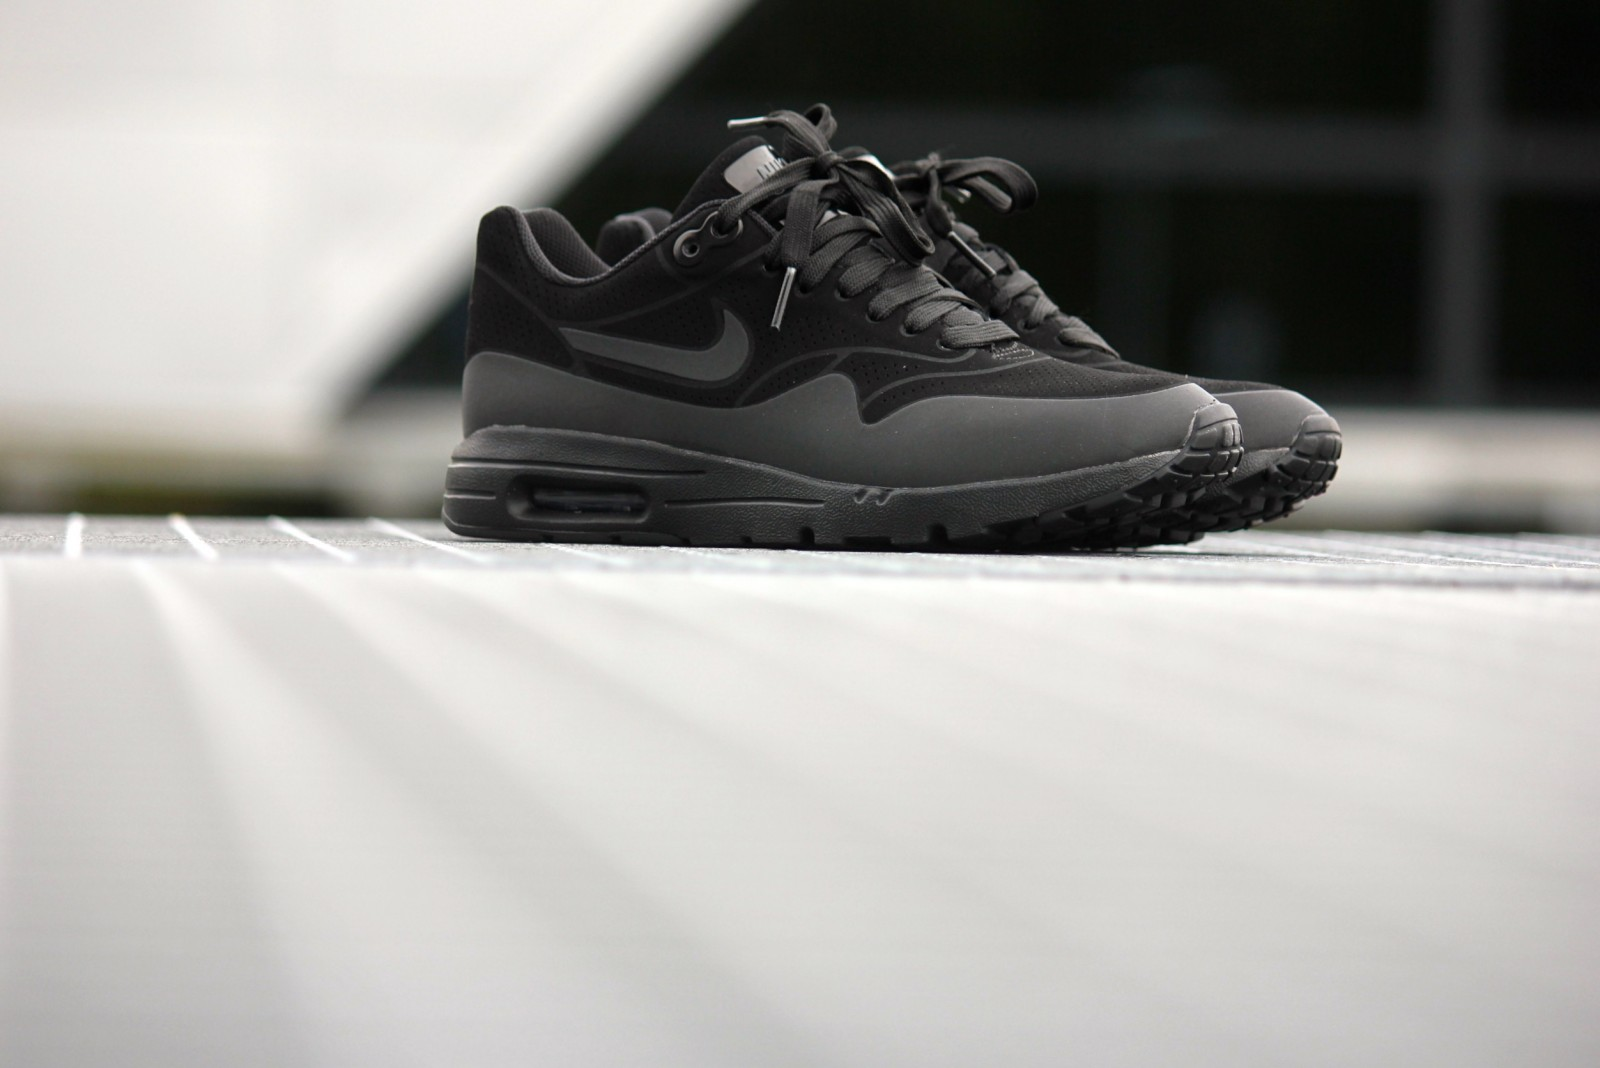 Nike Wmns Air max 1 Ultra Moire Black Anthracite 704995 003